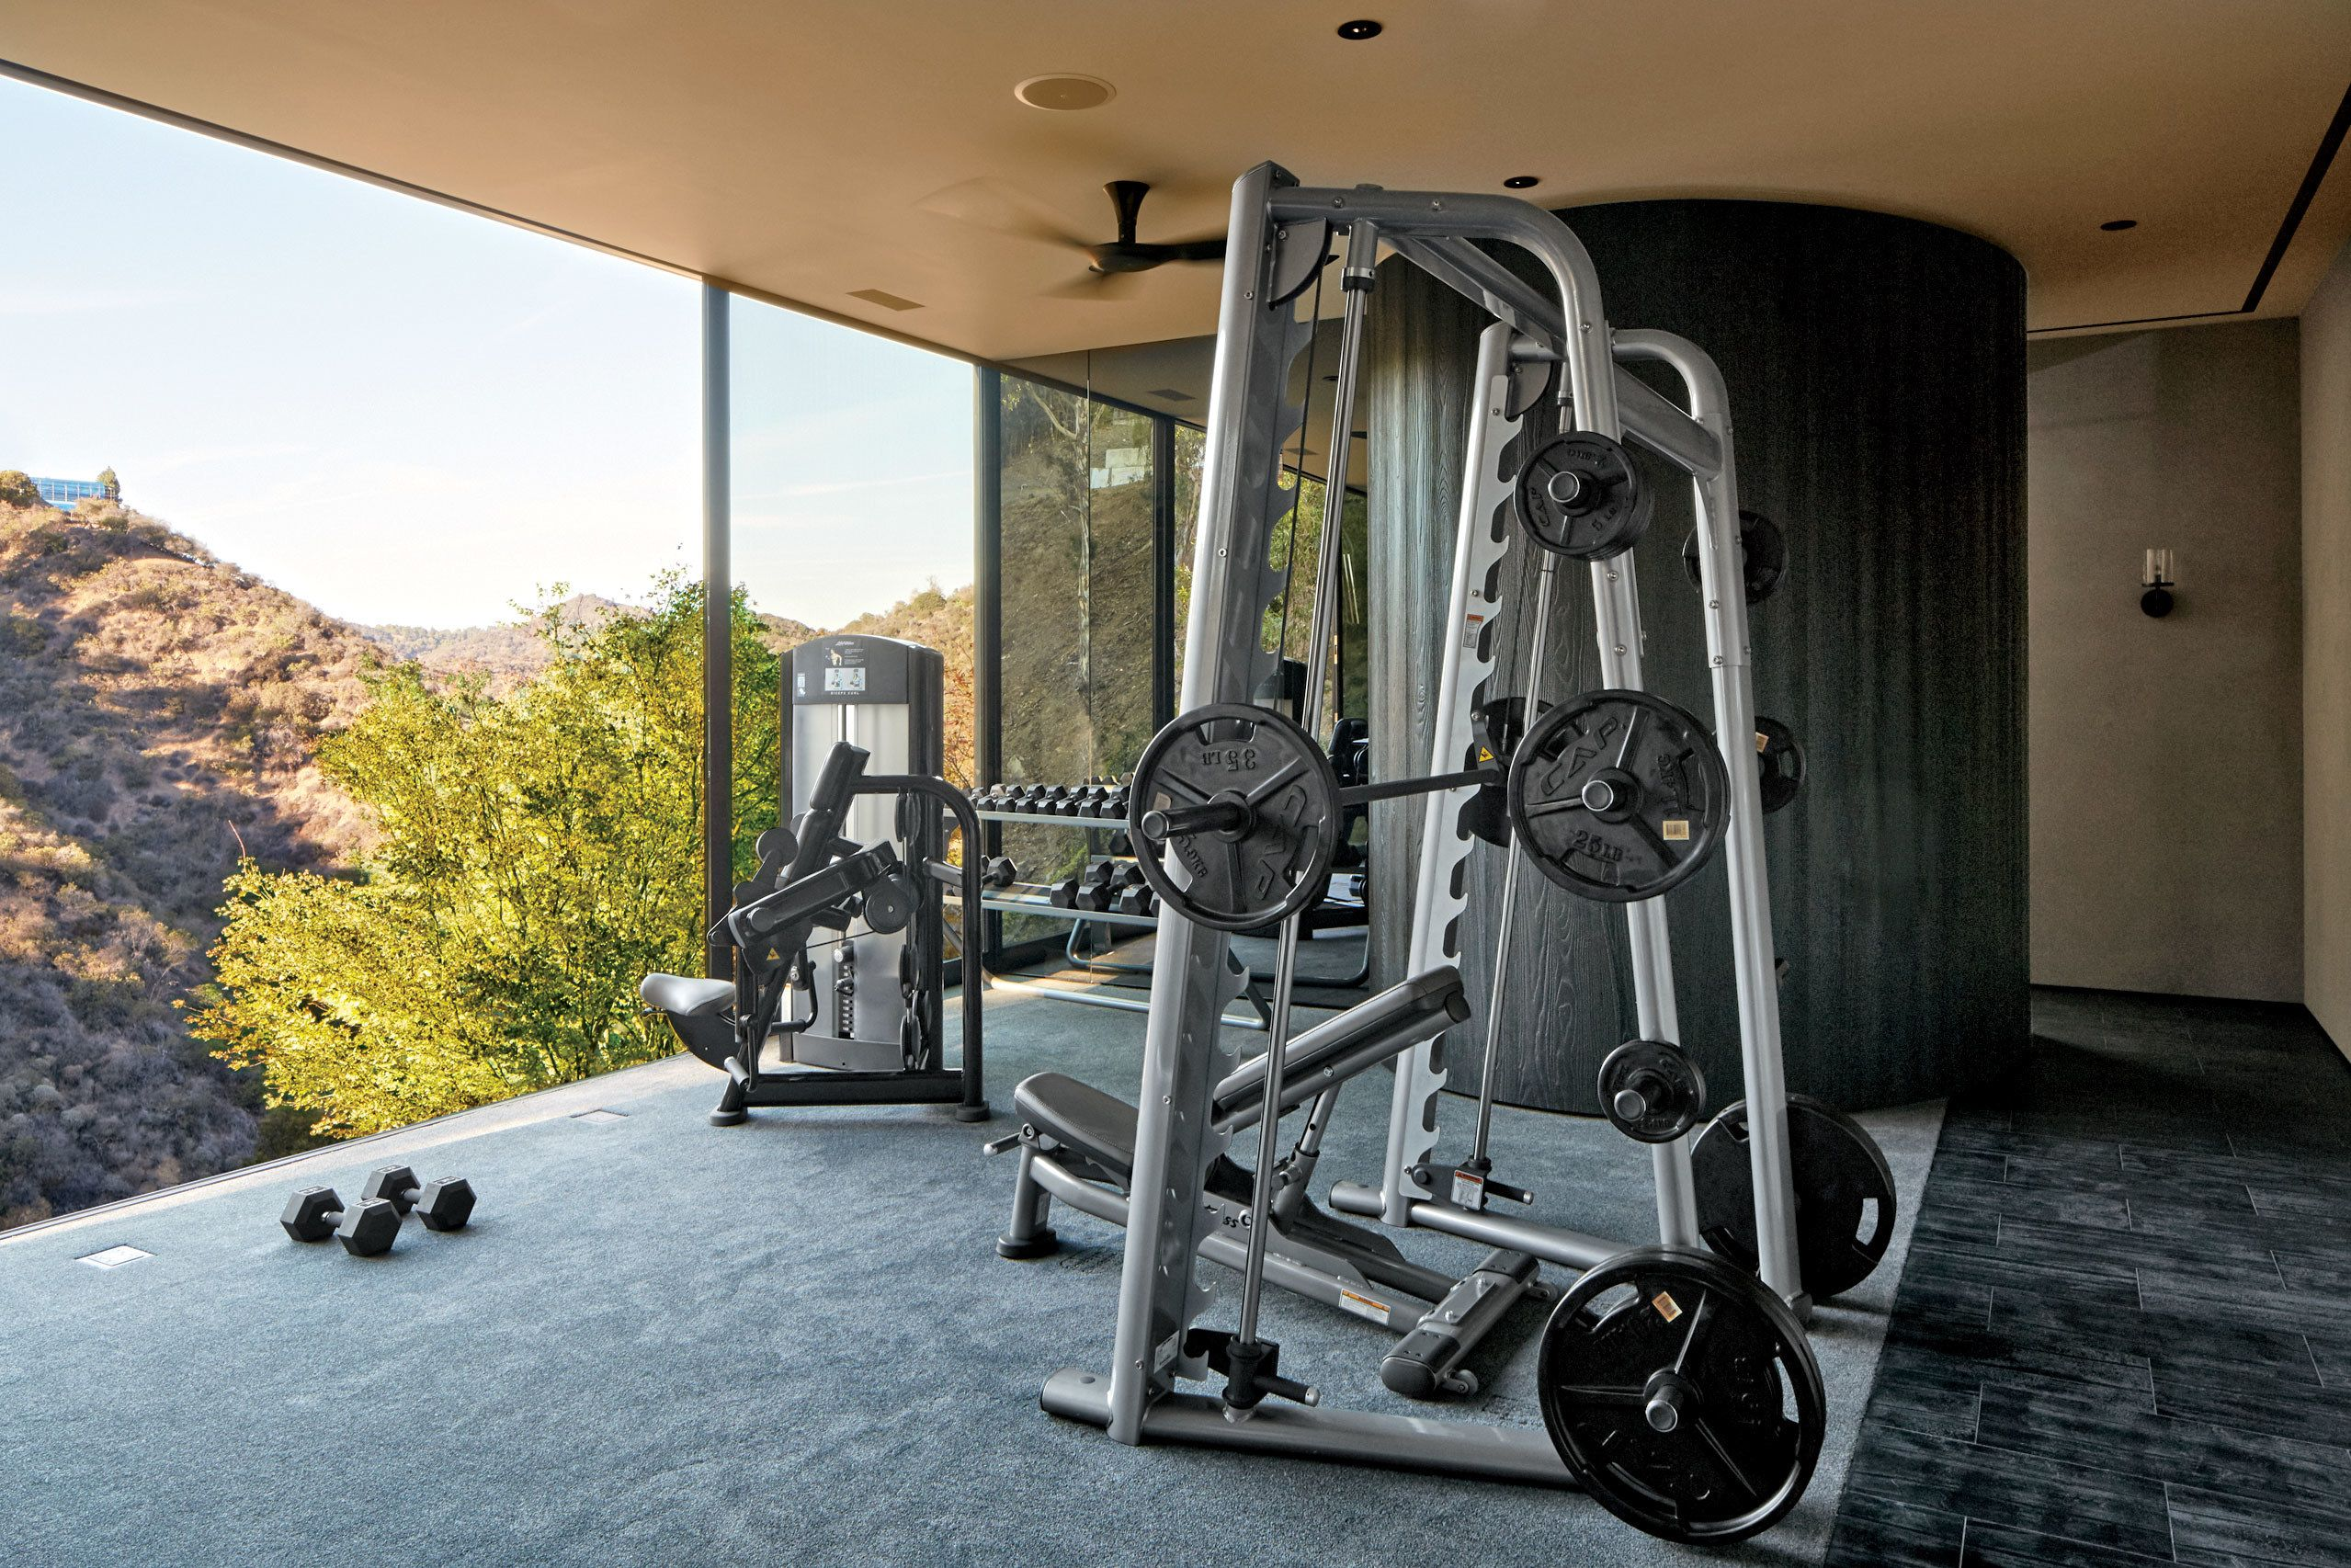 best home gym designs. 10 Home Gyms That Will Inspire You to Sweat  Architectural Digest Gym design